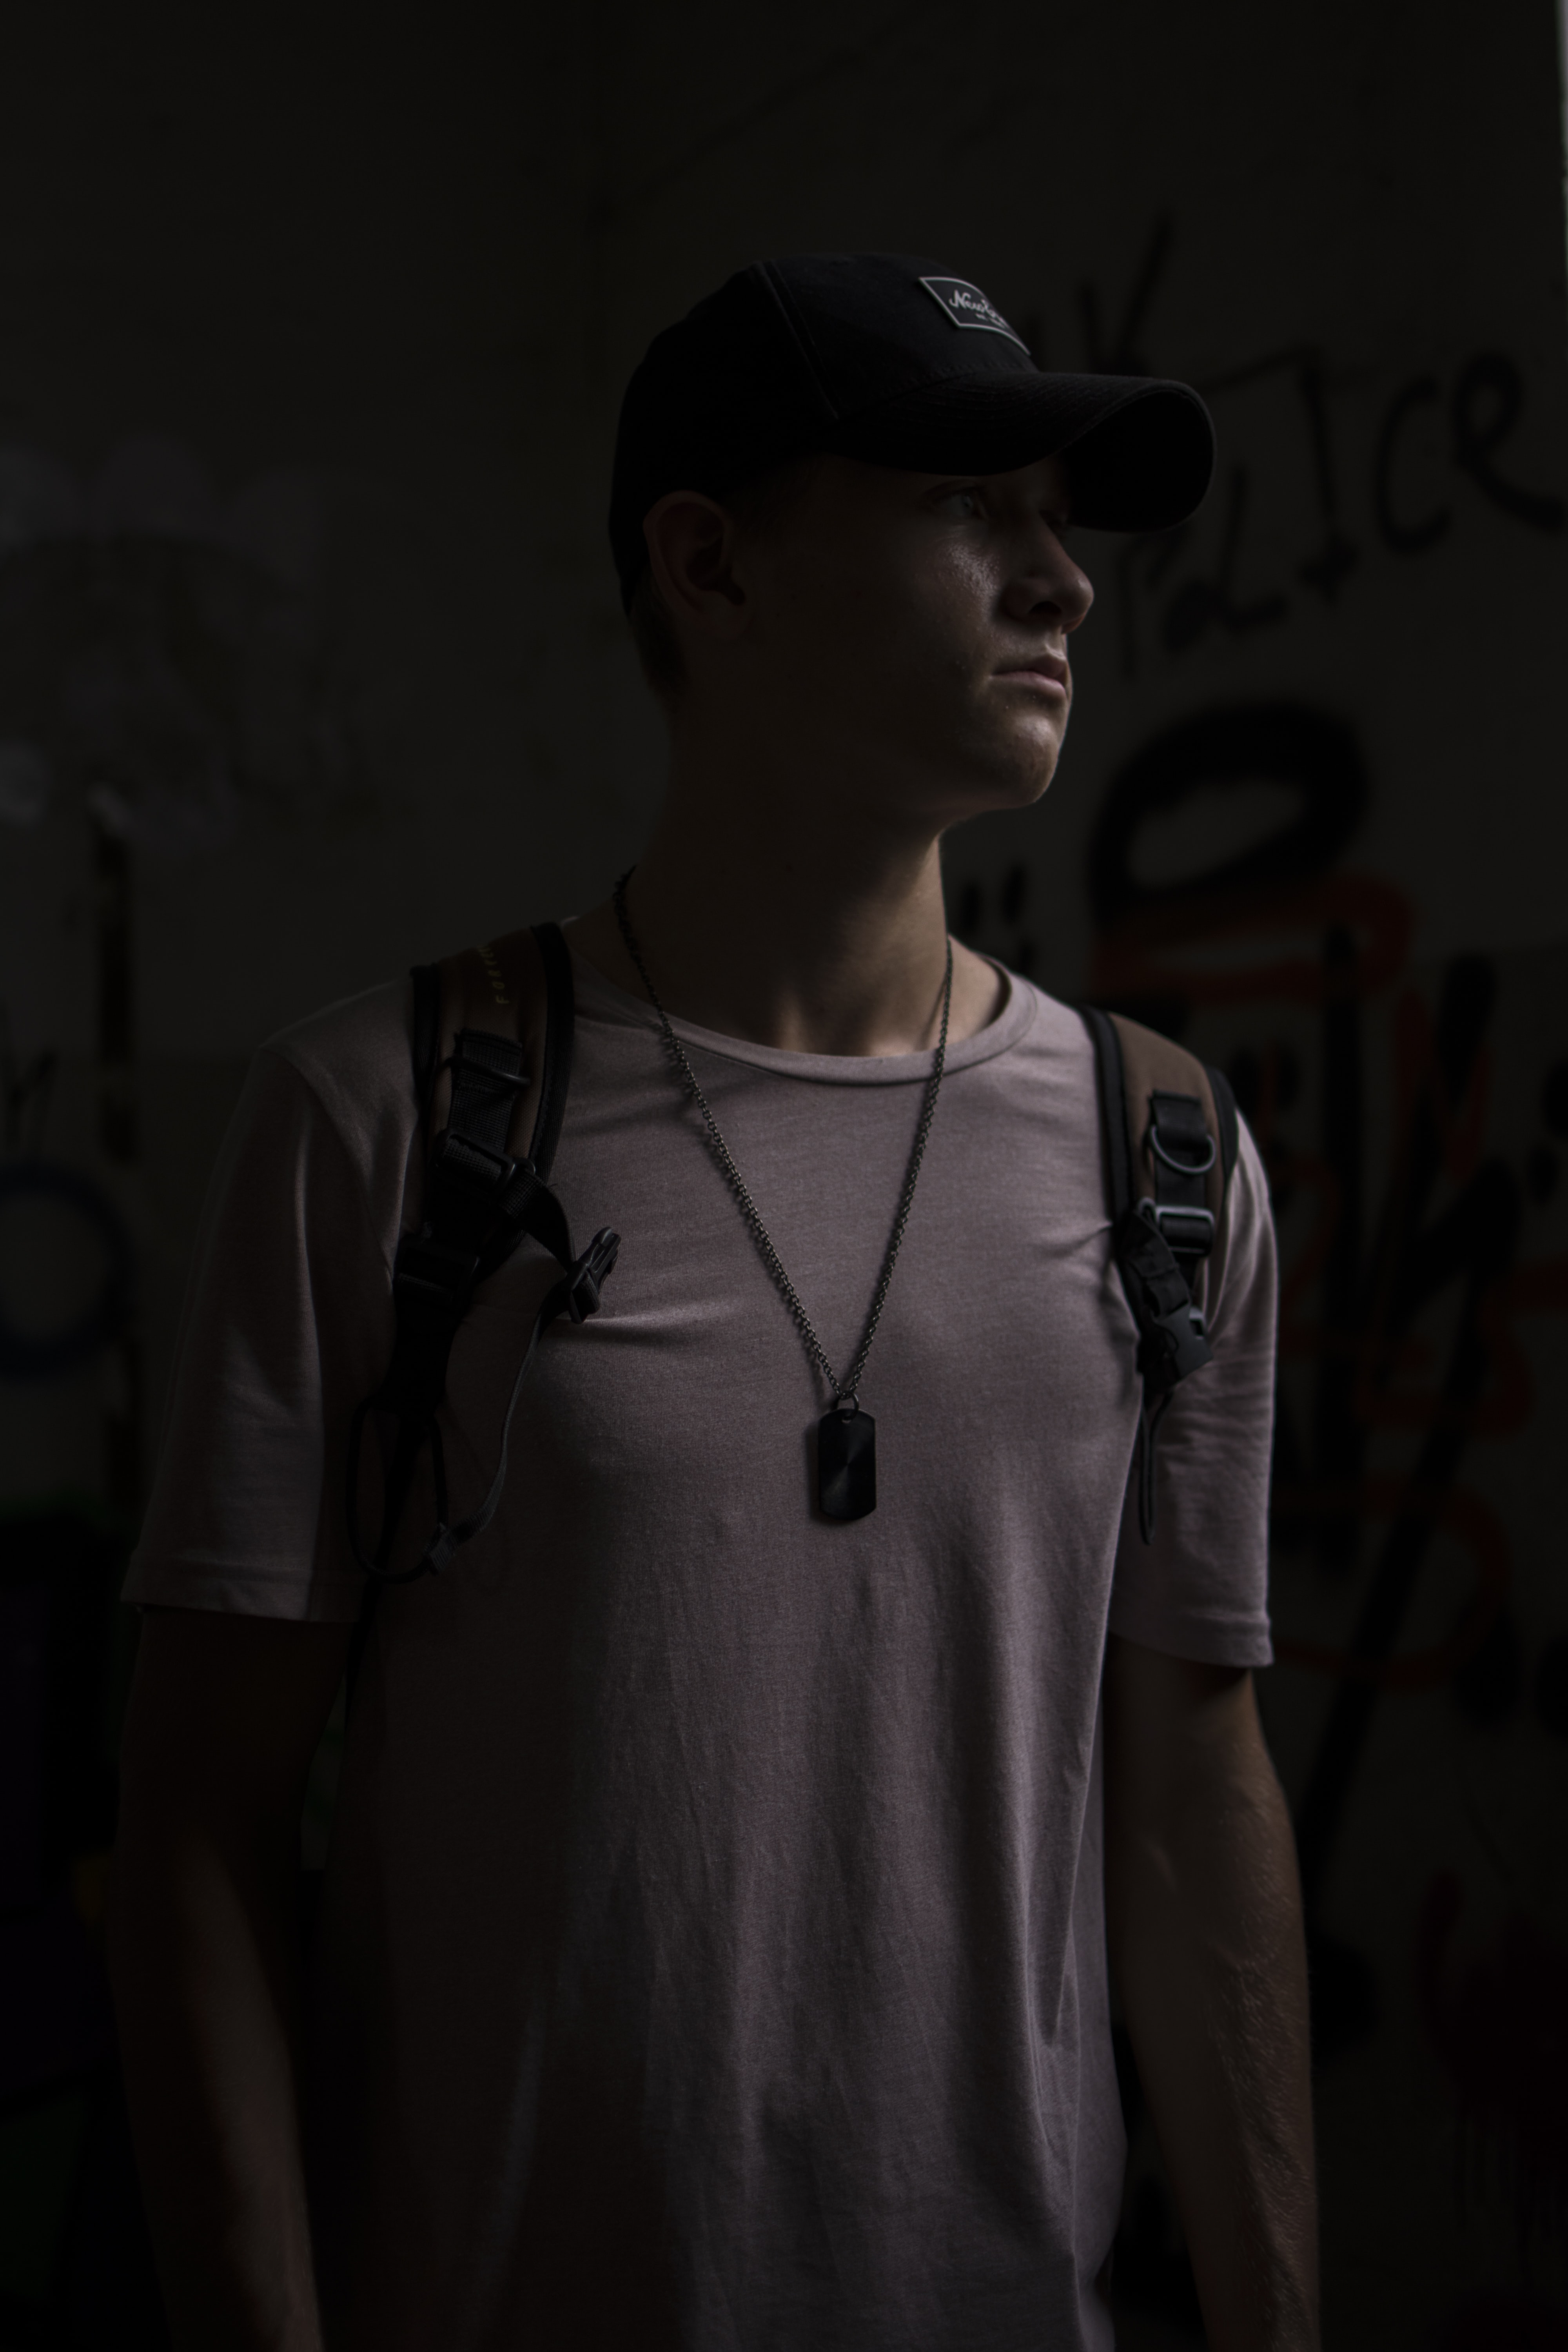 man wearing white T-shirt and backpack standing in a dark lit room